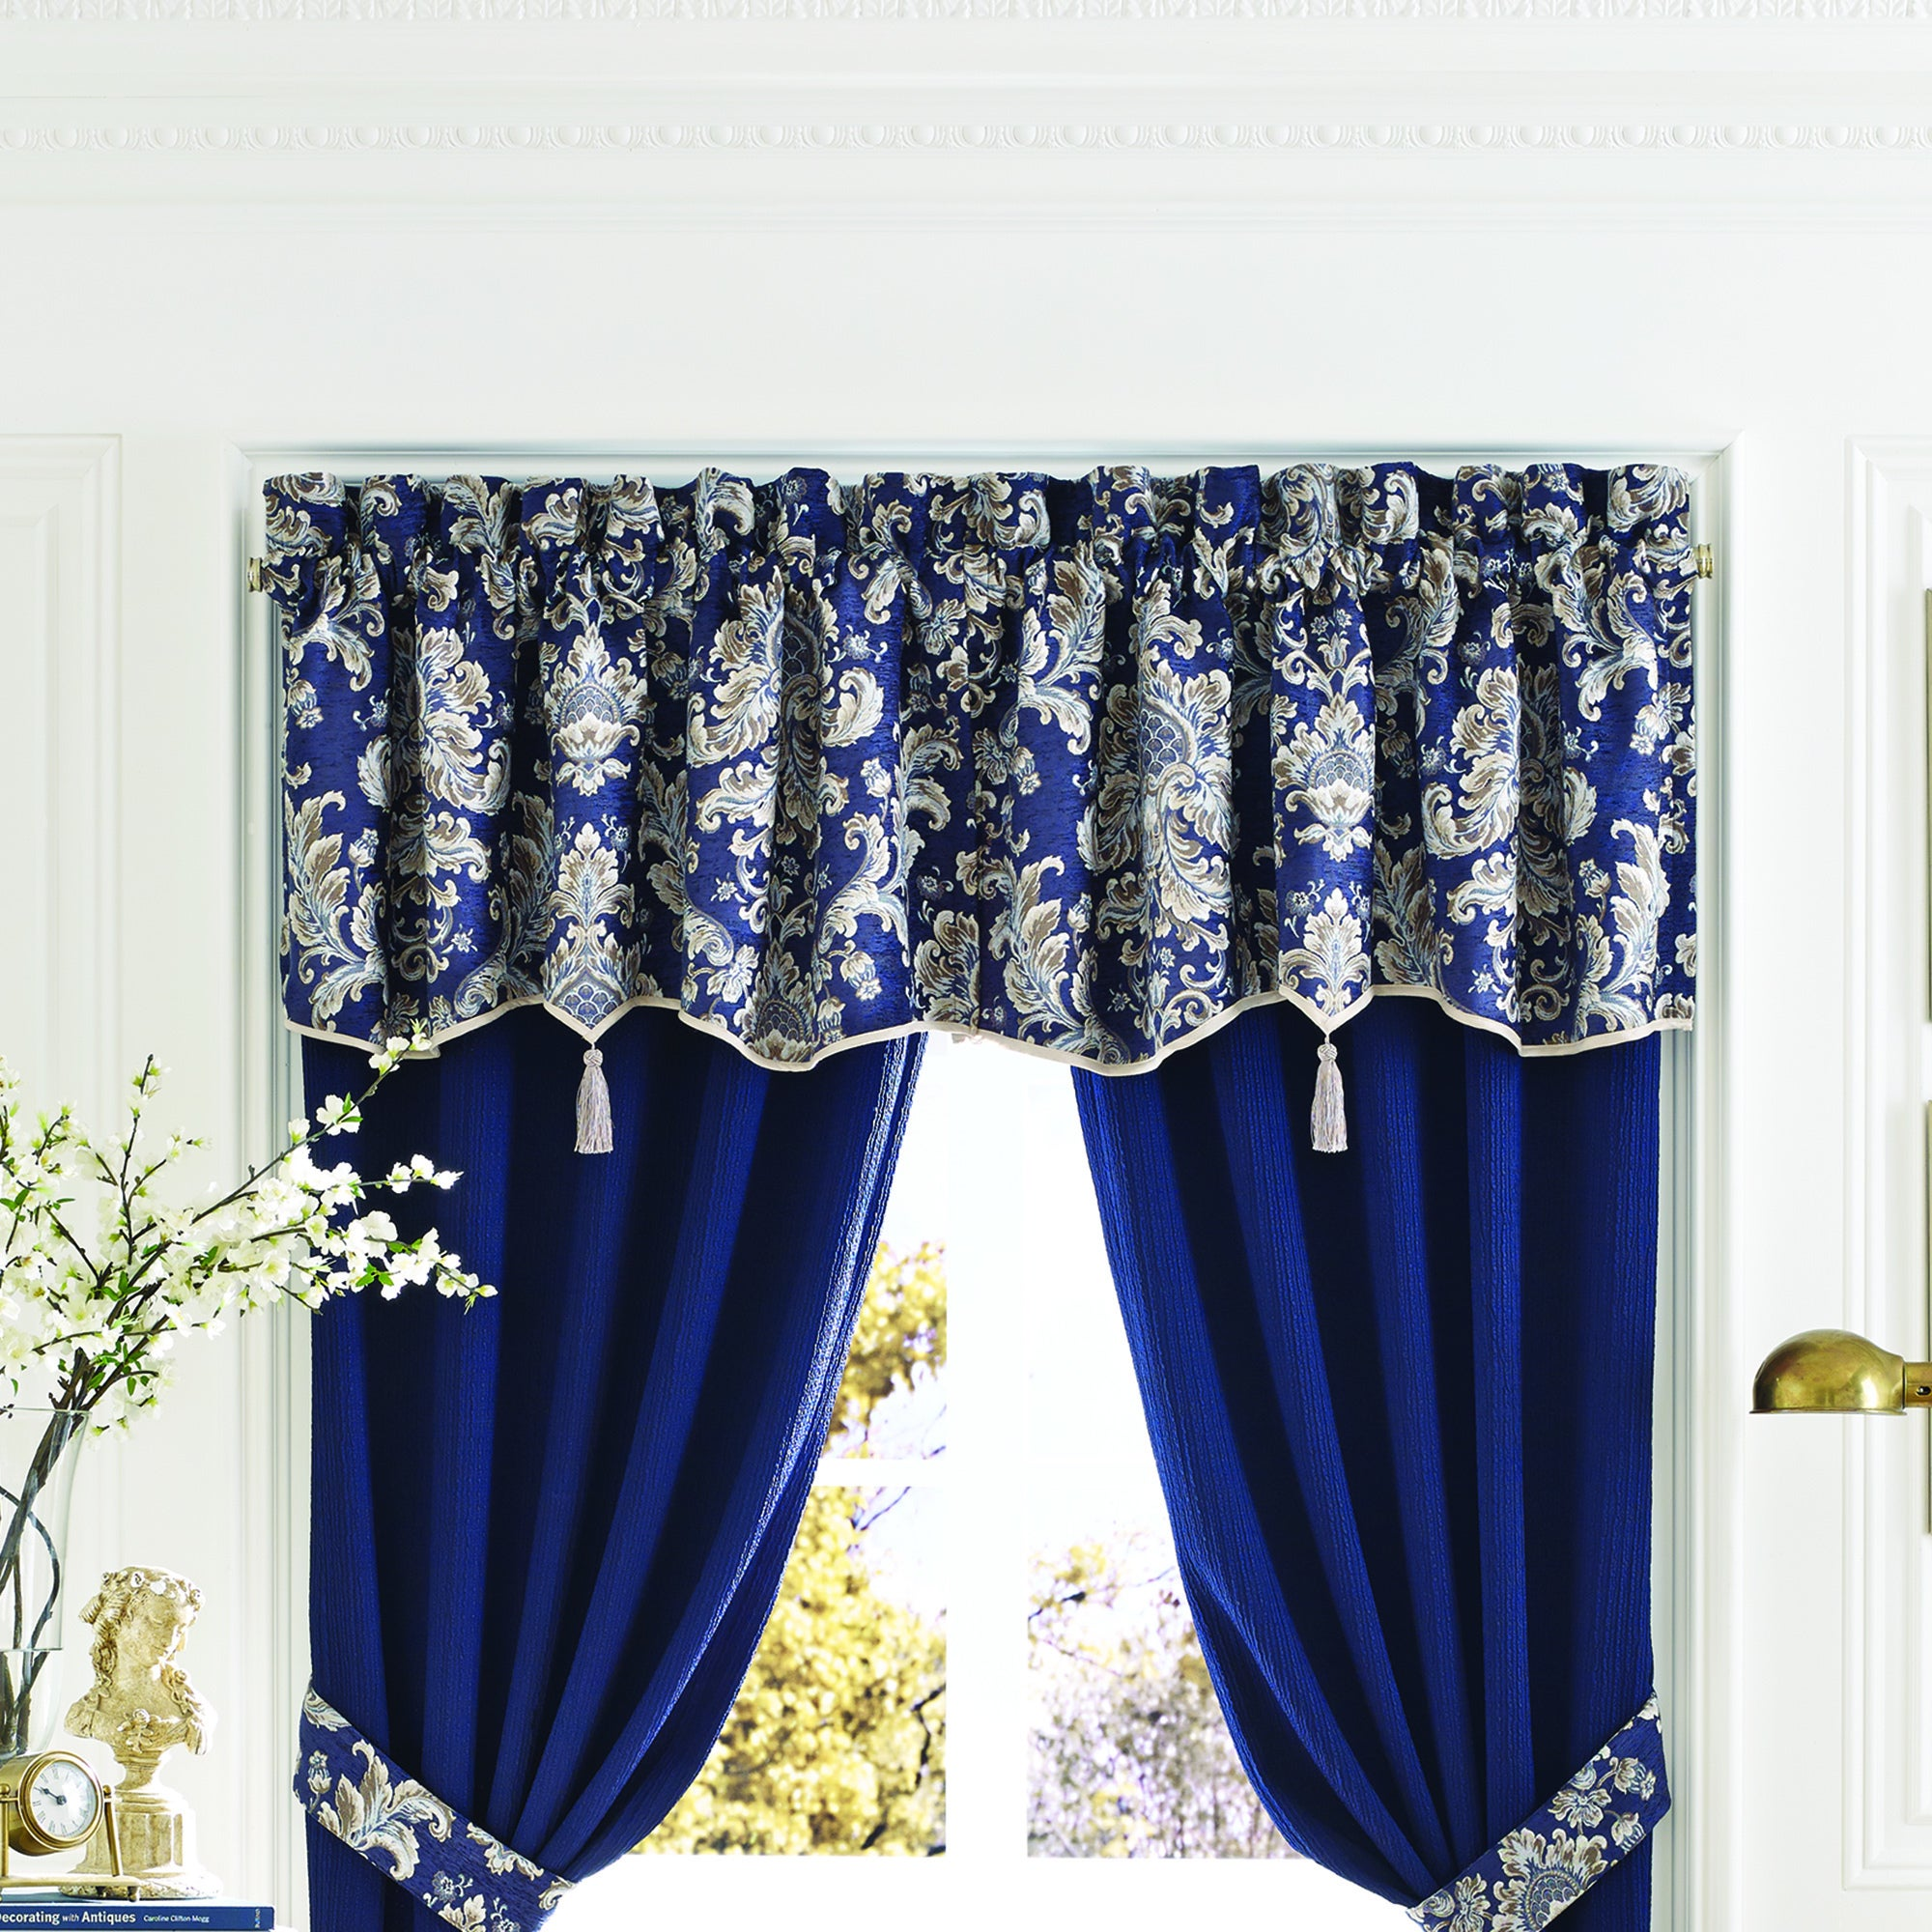 from on fabric pin cotton valance valances navy banding striped interlined in hem with and flat white hung toile